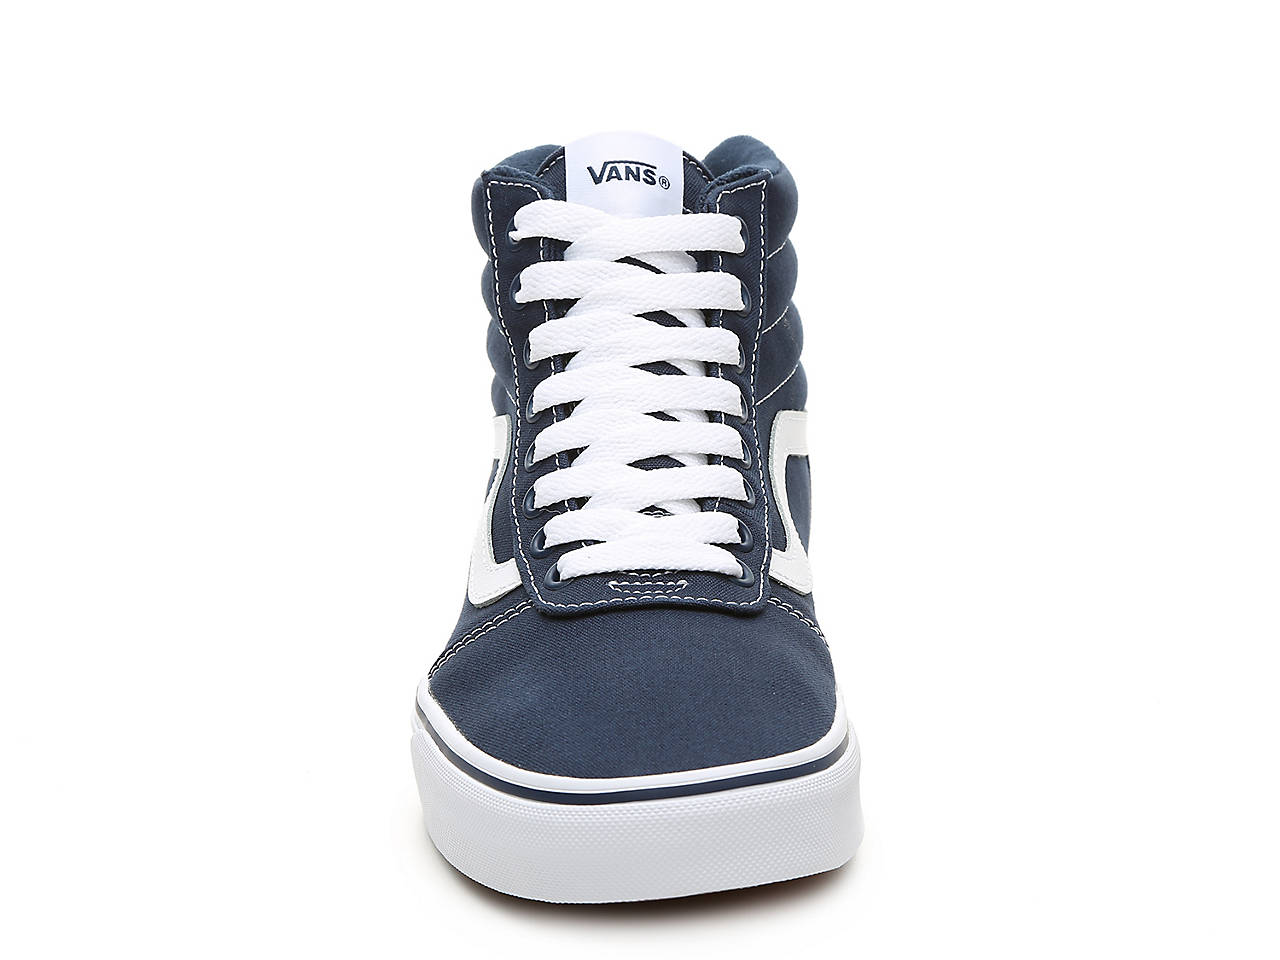 c3da5f66206b5f Vans Ward Hi Canvas High-Top Sneaker - Men s Men s Shoes